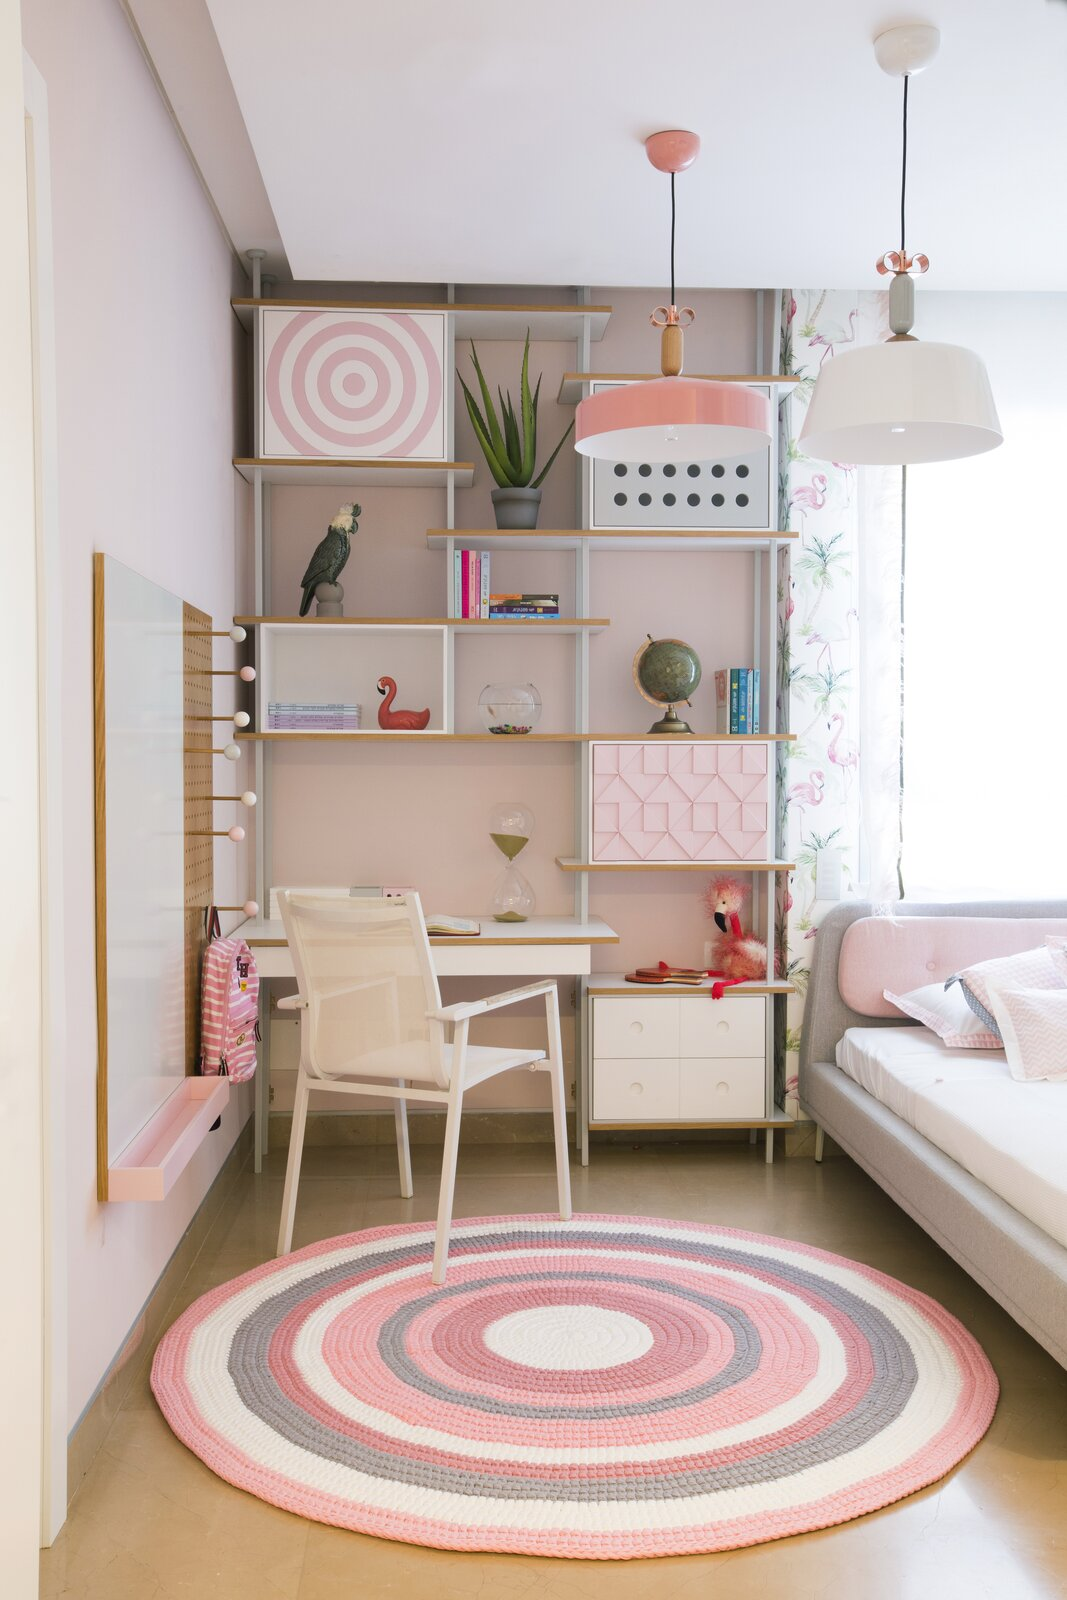 """Hay's """"Blush Room"""" was designed for a 12-year-old girl and offers studying, sleeping, and playing areas. Different materials and textures—wood, metal, wool, fabric—add variety while feeling polished.  Photo 3 of 13 in How to Design a Room That Grows Up With Your Kids"""